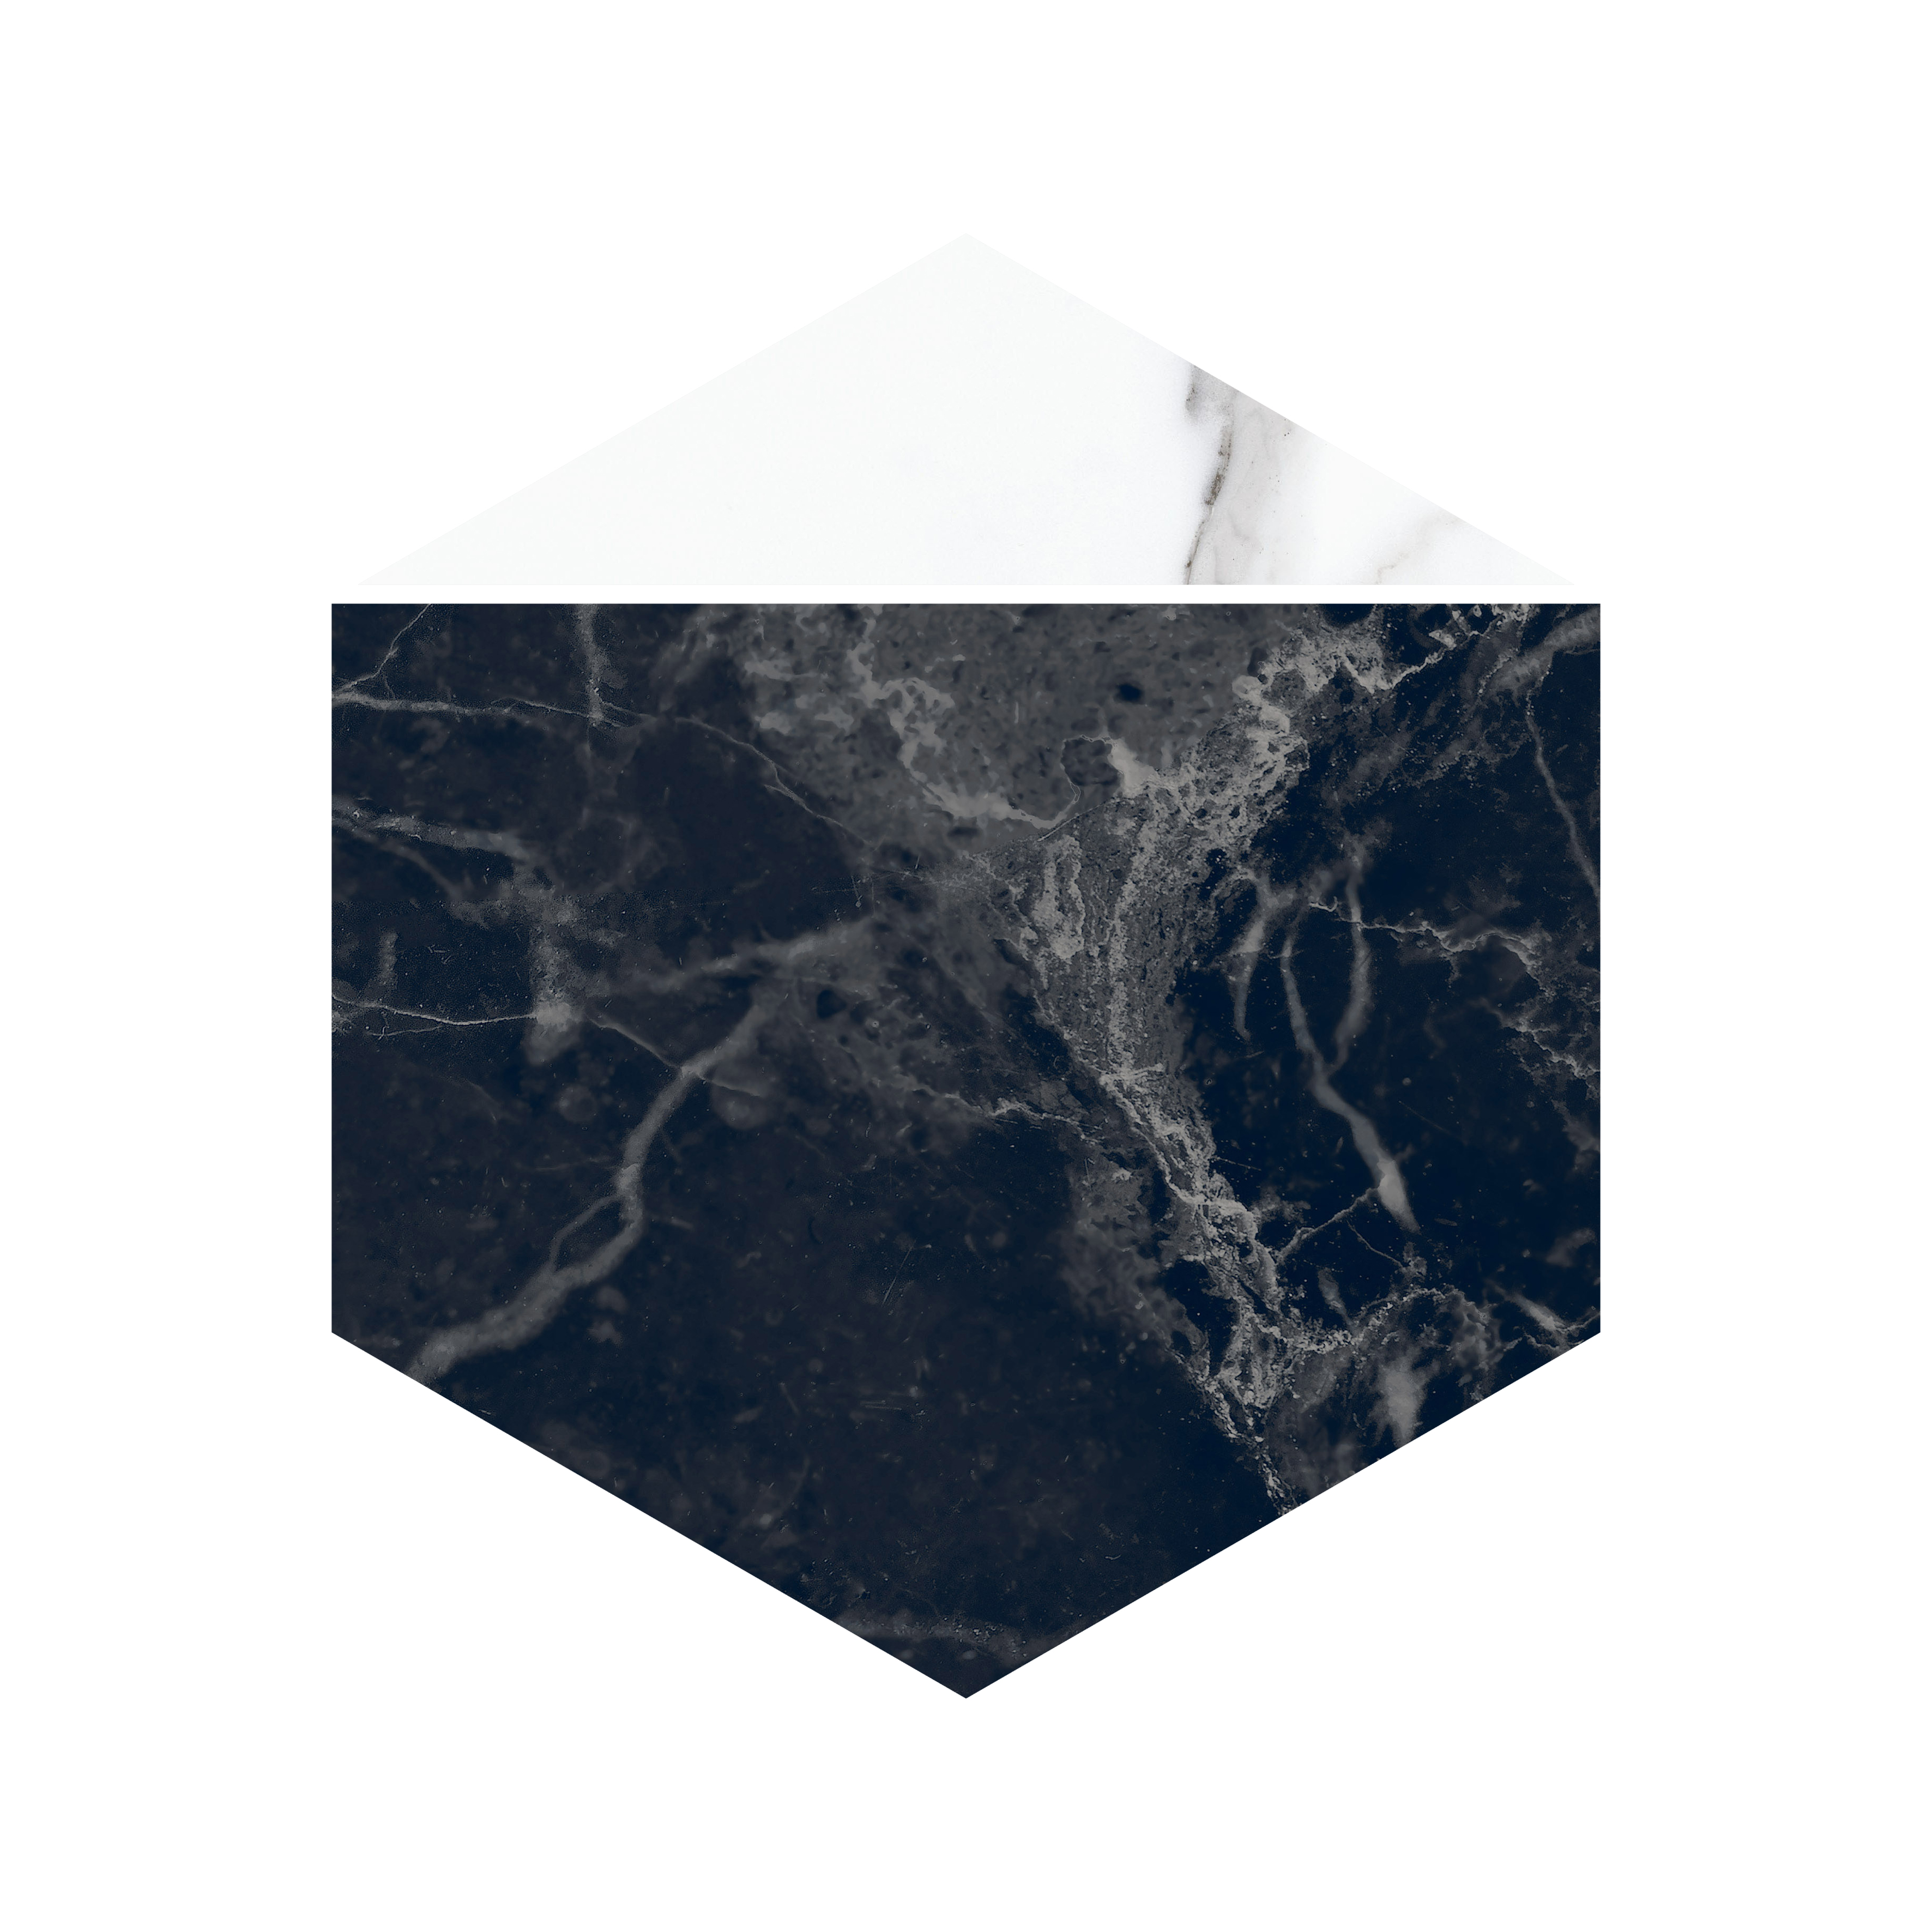 NOCTURNE 20X23 HEXAGON BLACK GLOSSY